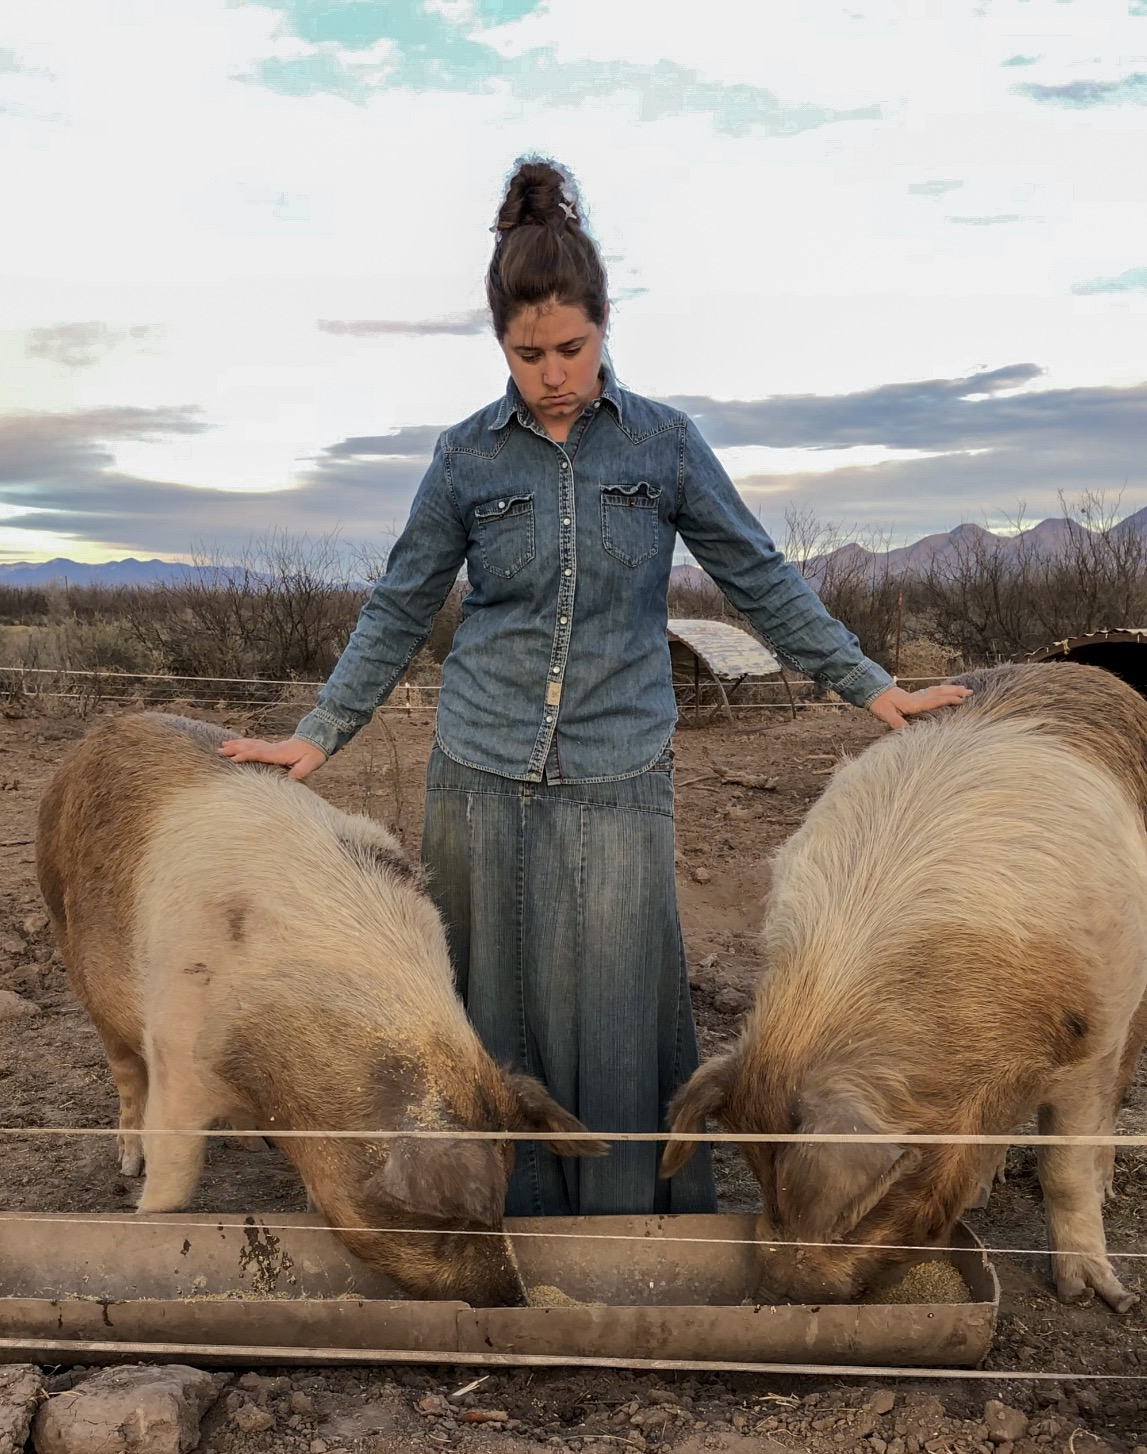 jenny-with-pigs.JPG